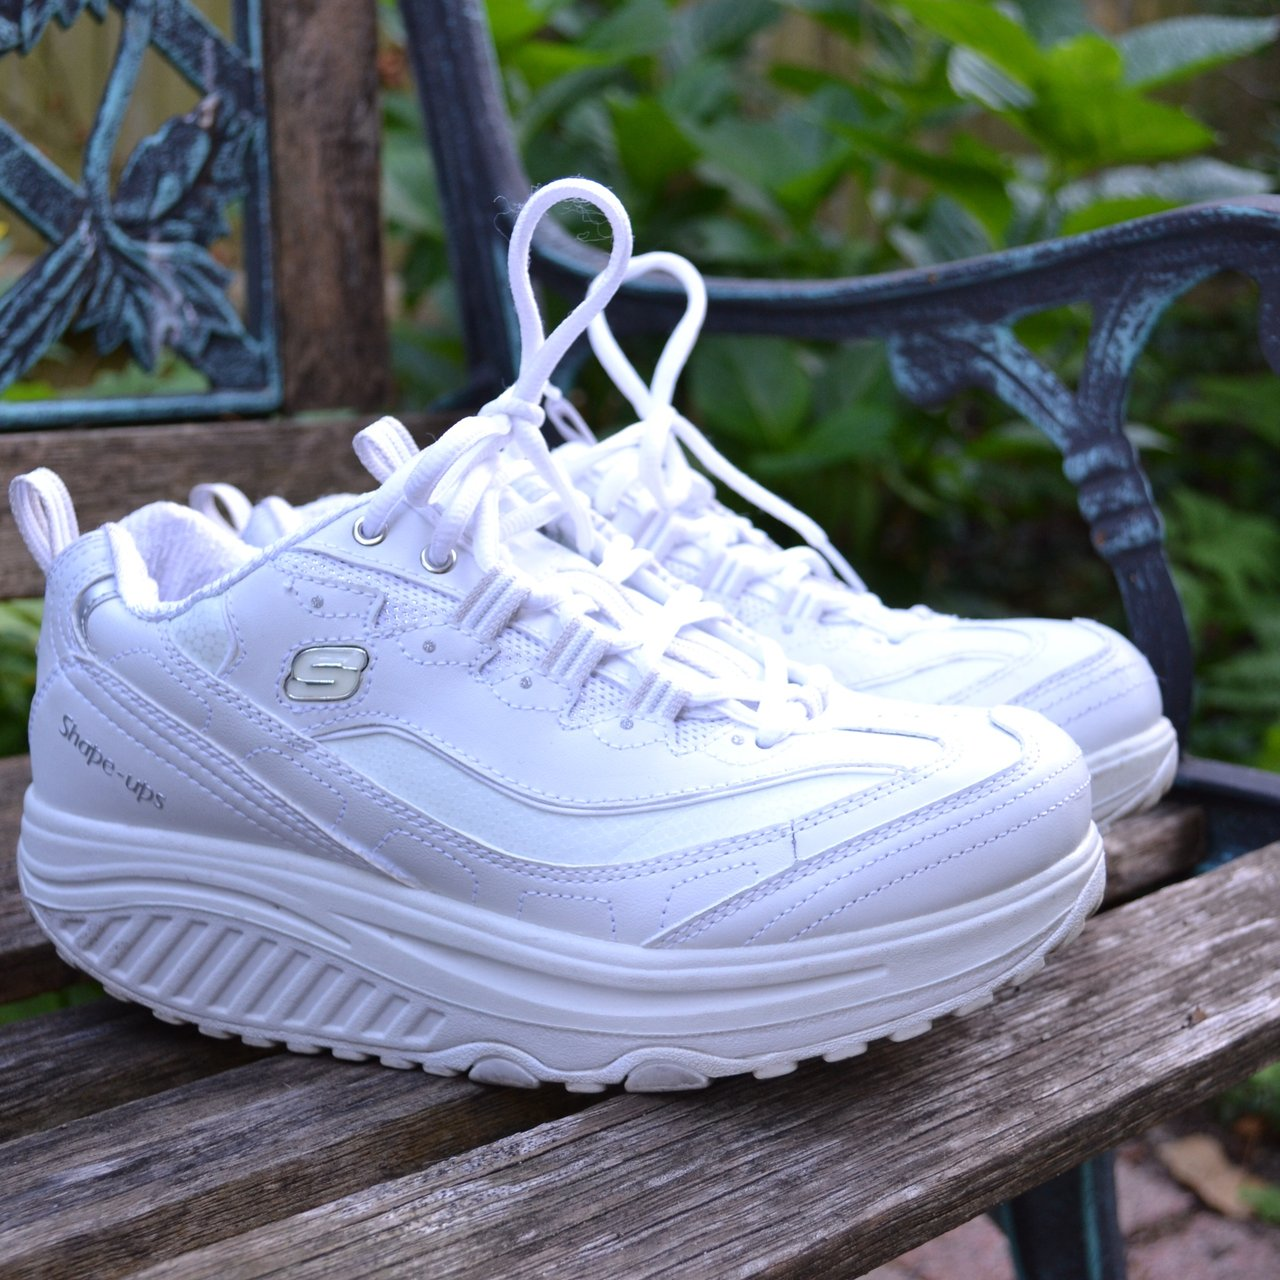 a34397e5580 🌻 Incredibly cute white Skechers shape ups!!! These shoes a - Depop